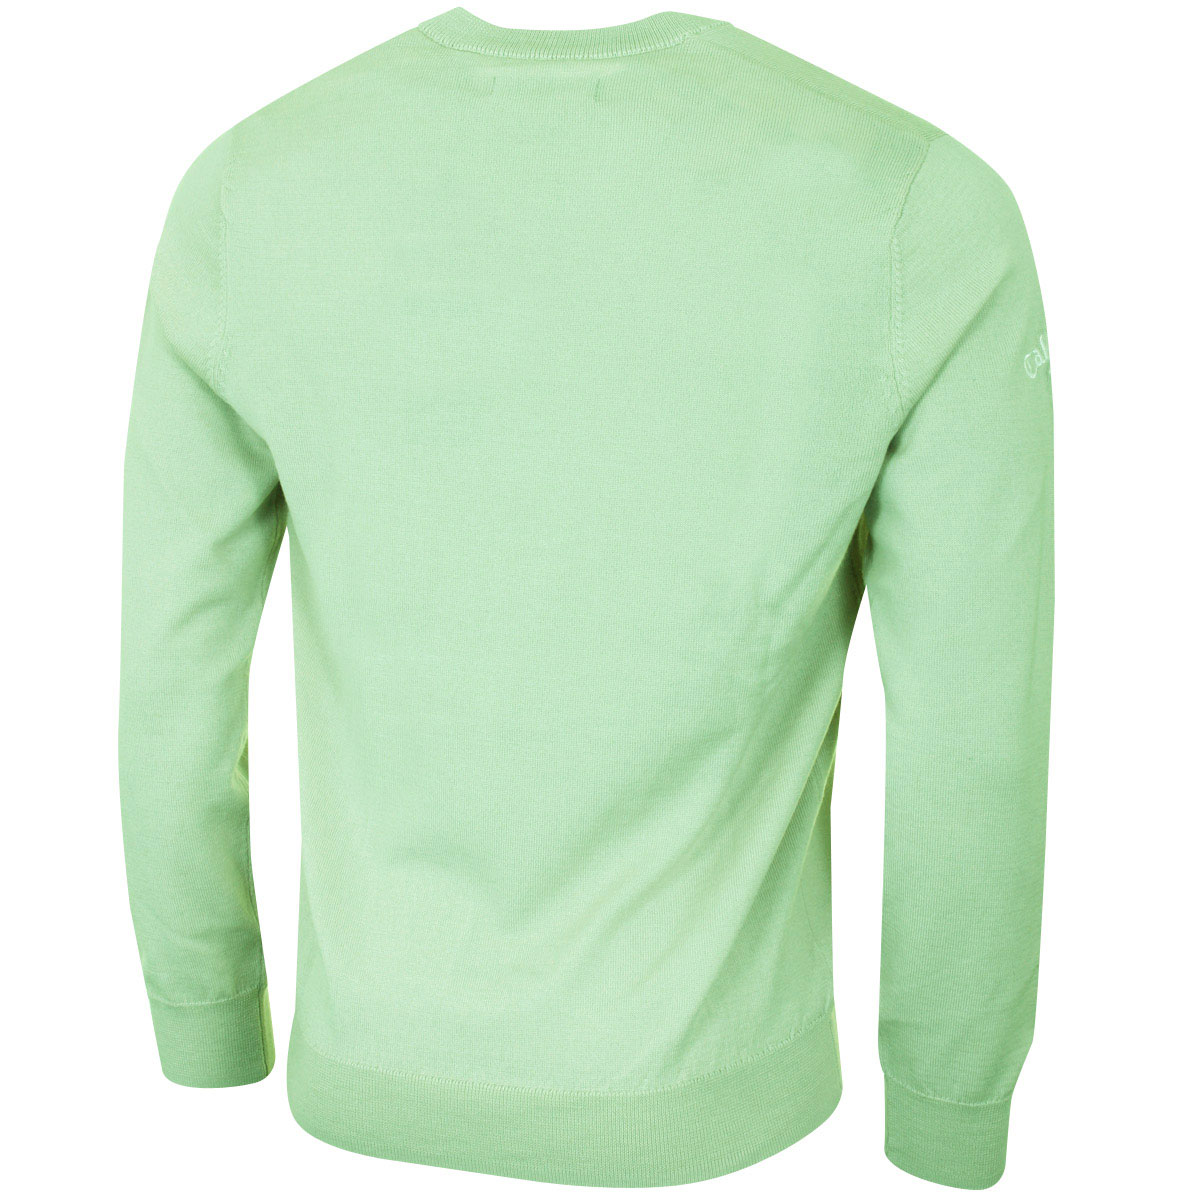 Callaway-Golf-Mens-Ribbed-V-Neck-Merino-Opti-Therm-Sweater-Jumper-64-OFF-RRP thumbnail 8